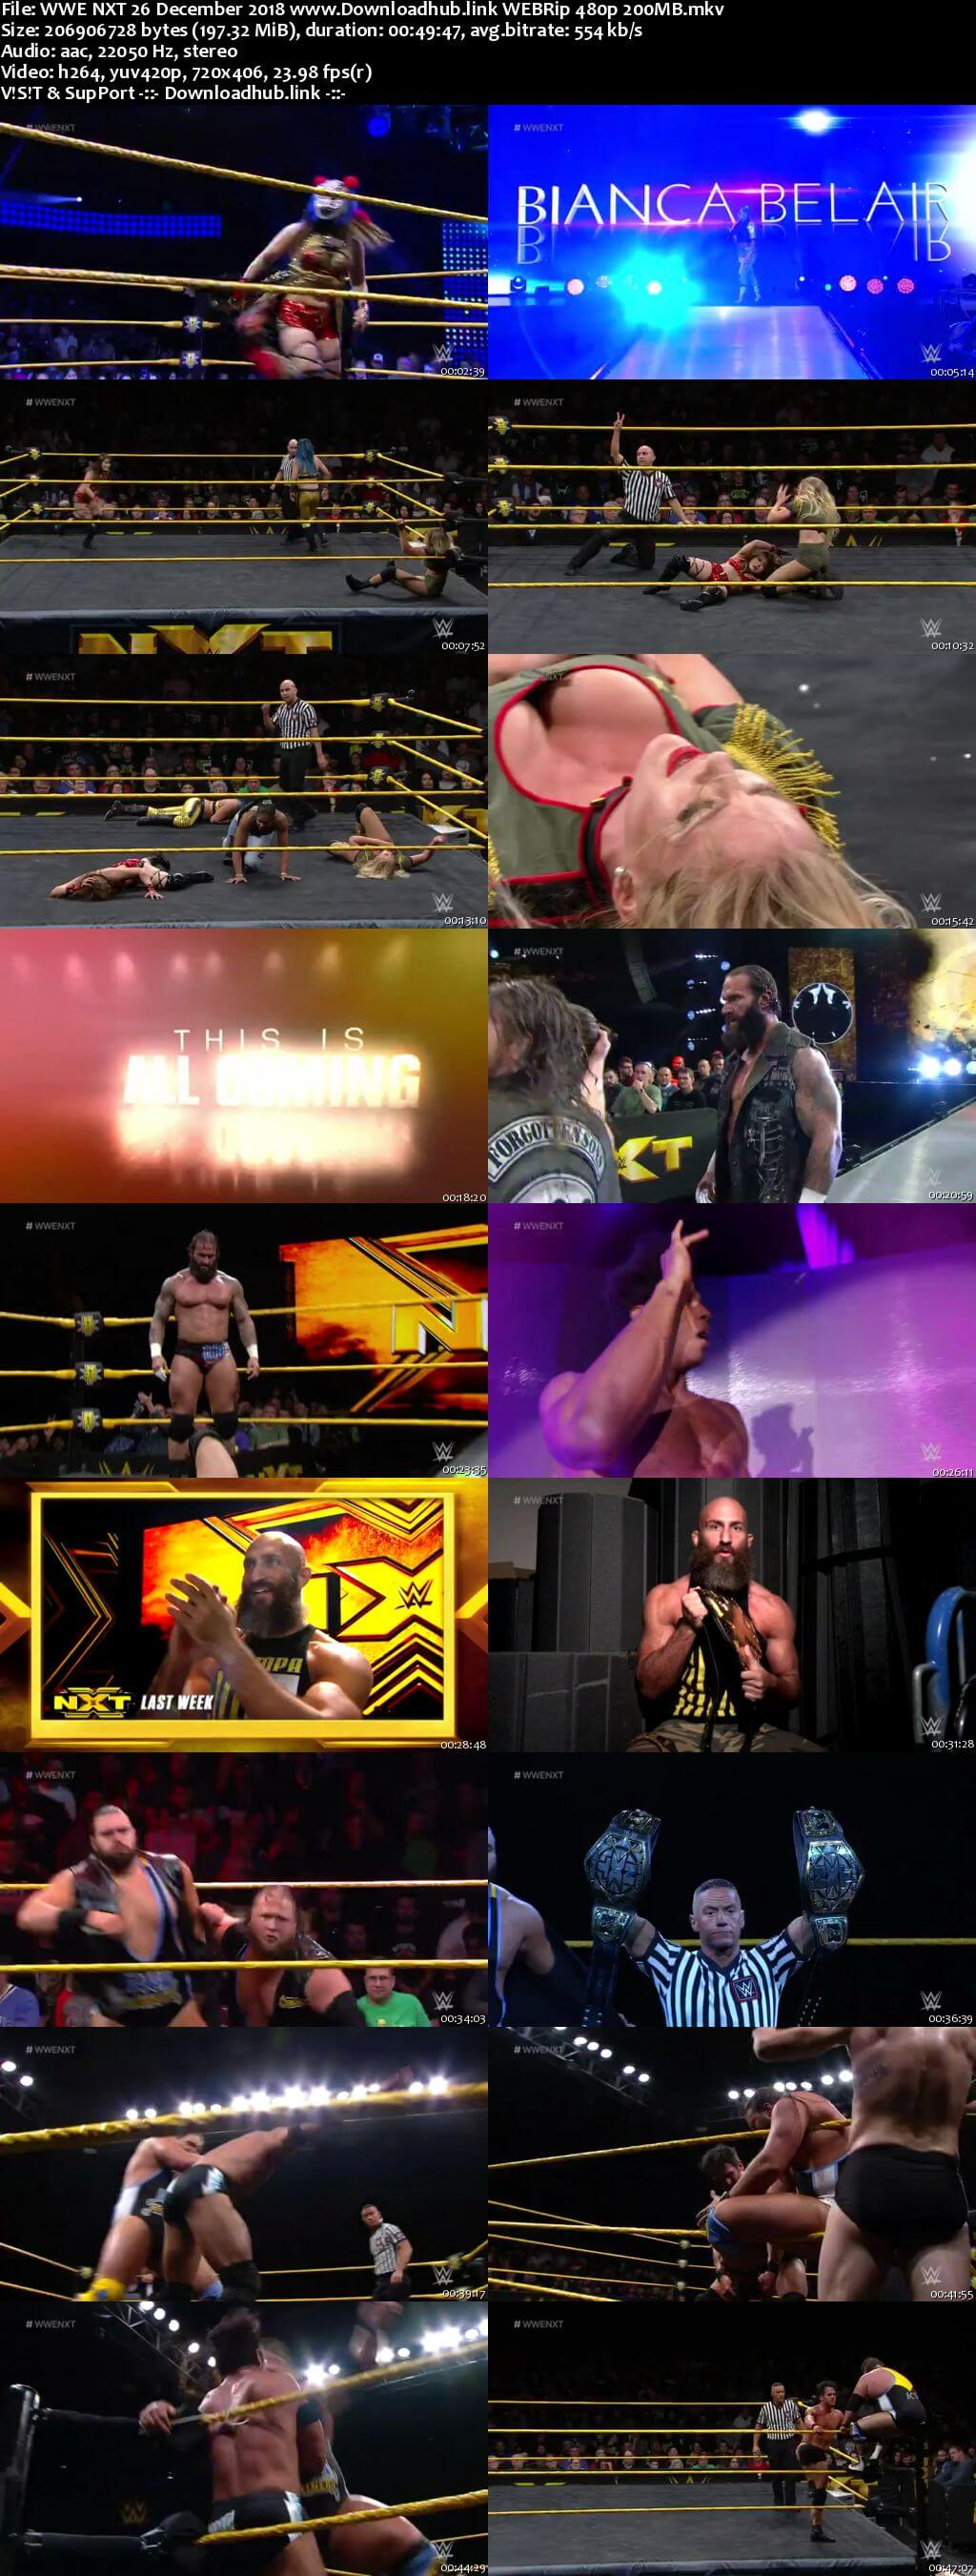 WWE NXT 26th December 2018 200MB HDTV 480p